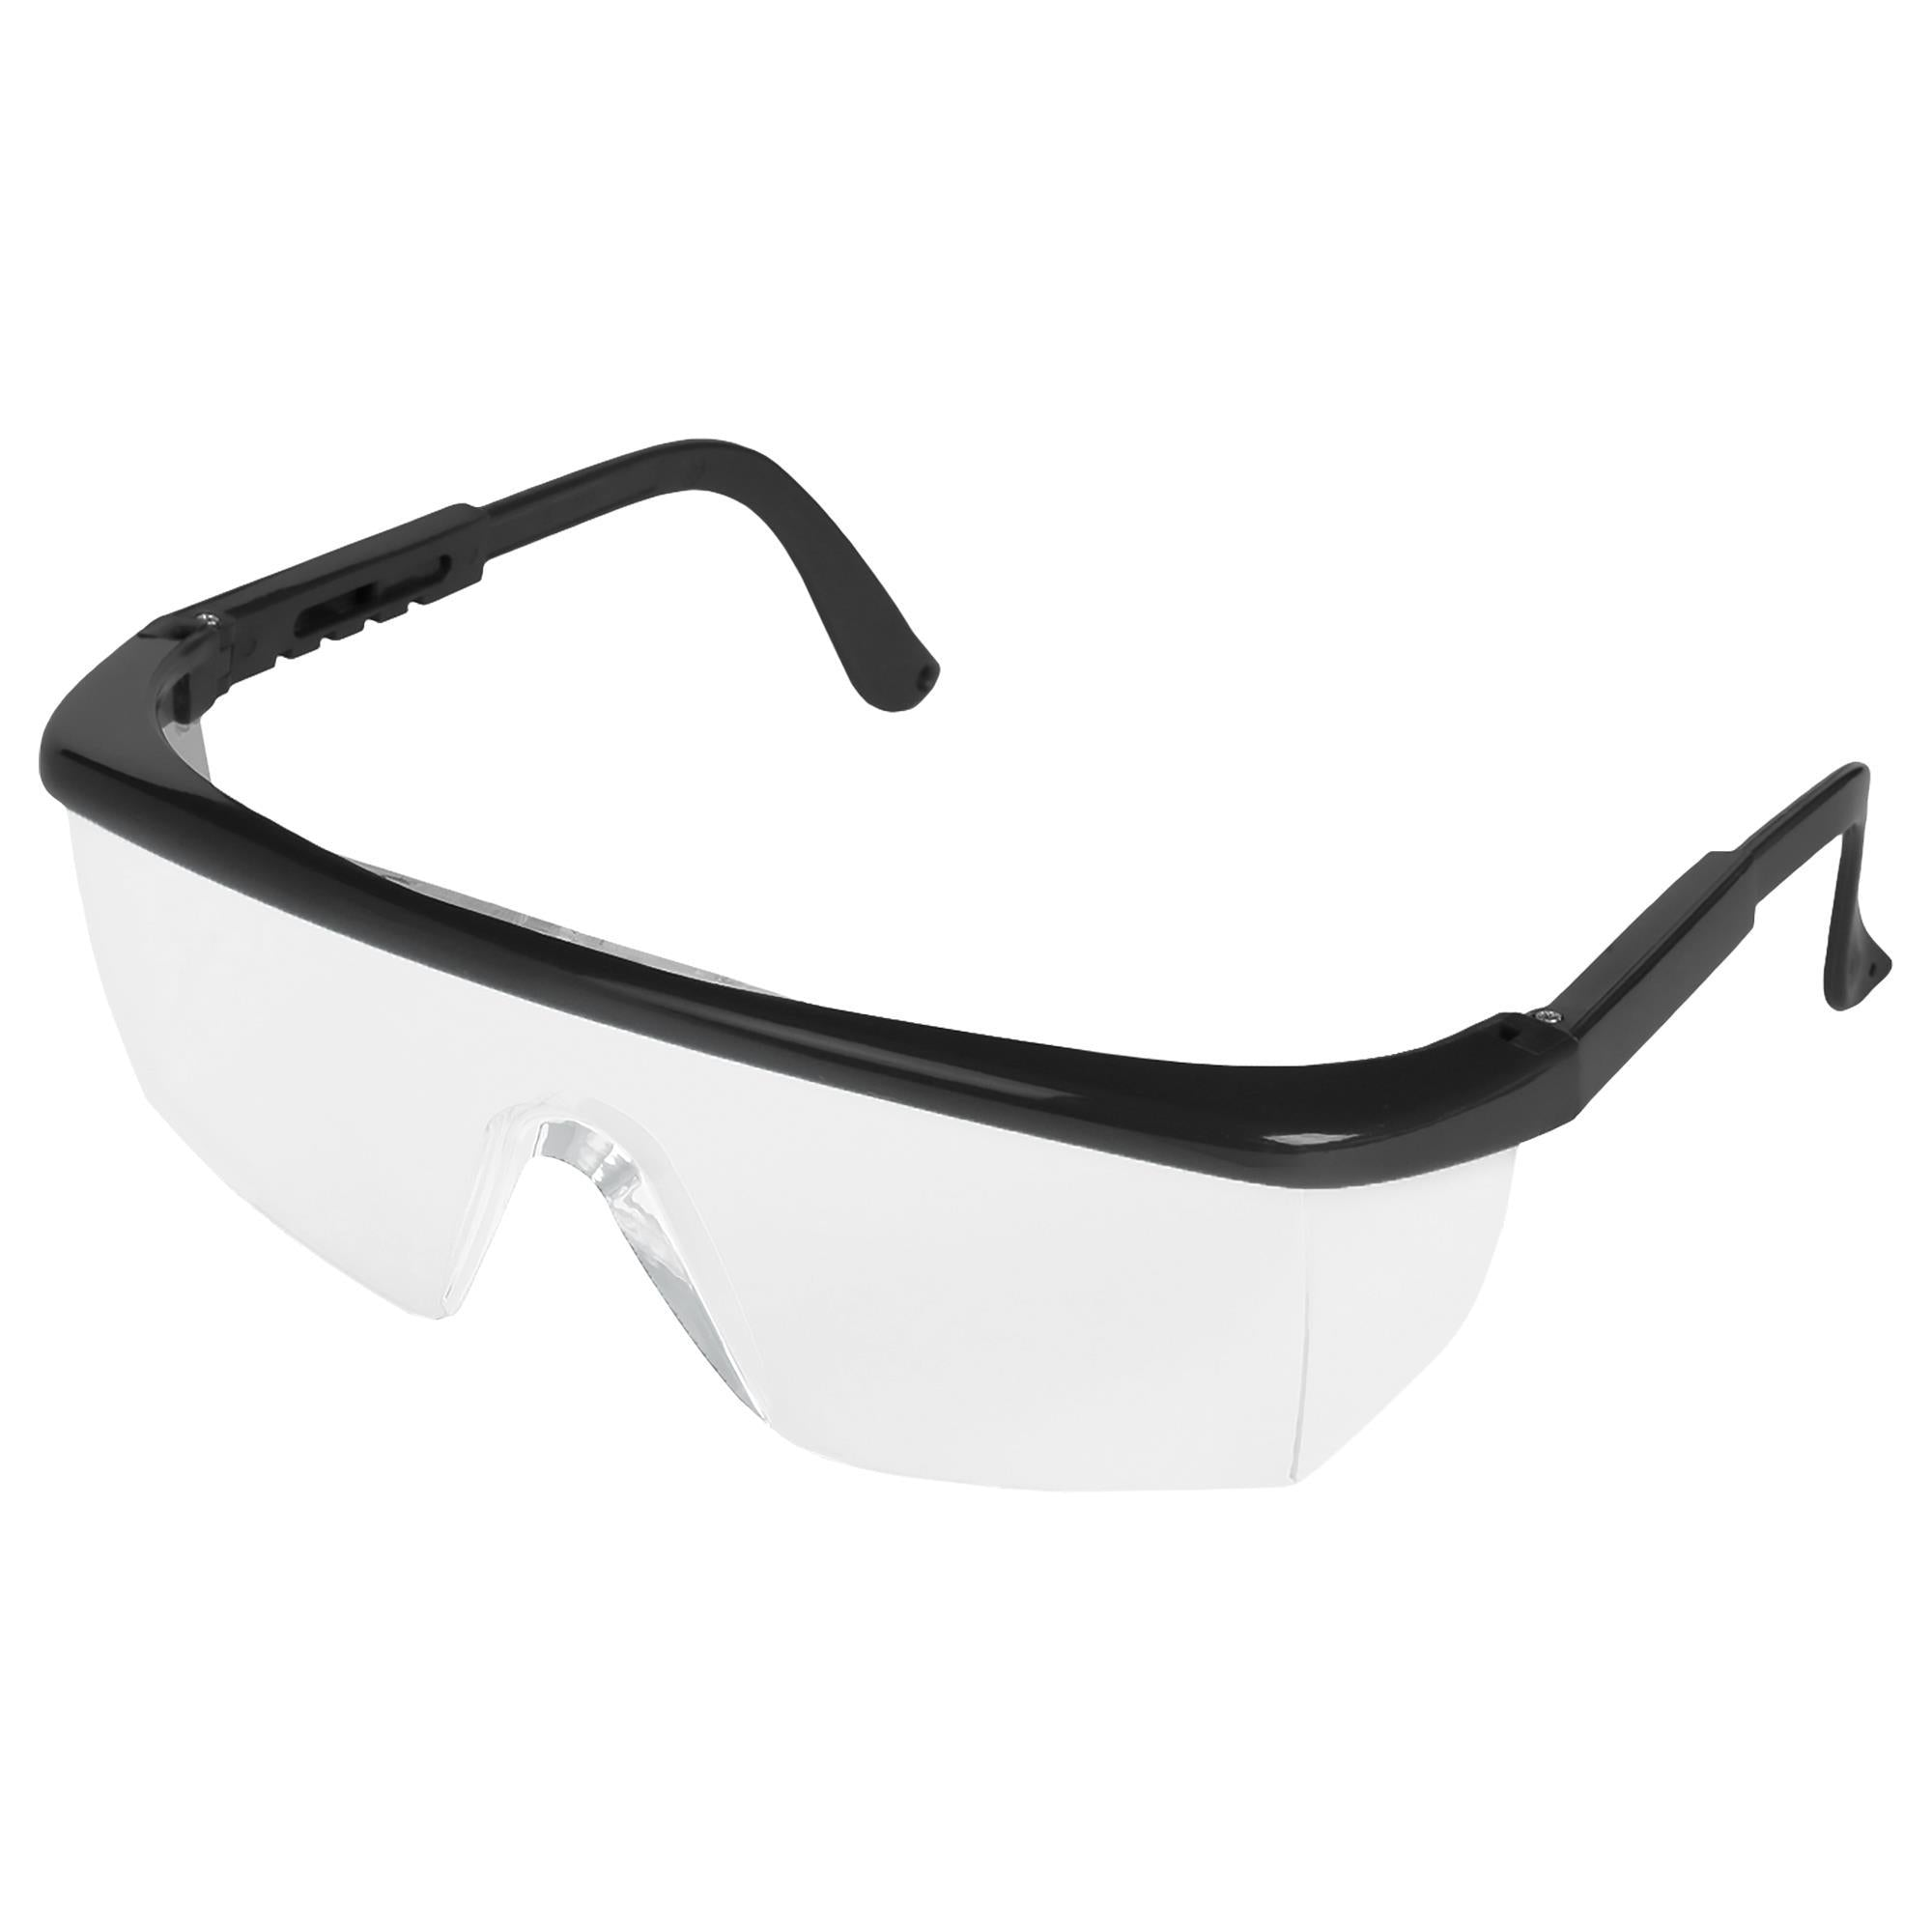 Sting-Rays Adjustable Safety Glasses 1PC